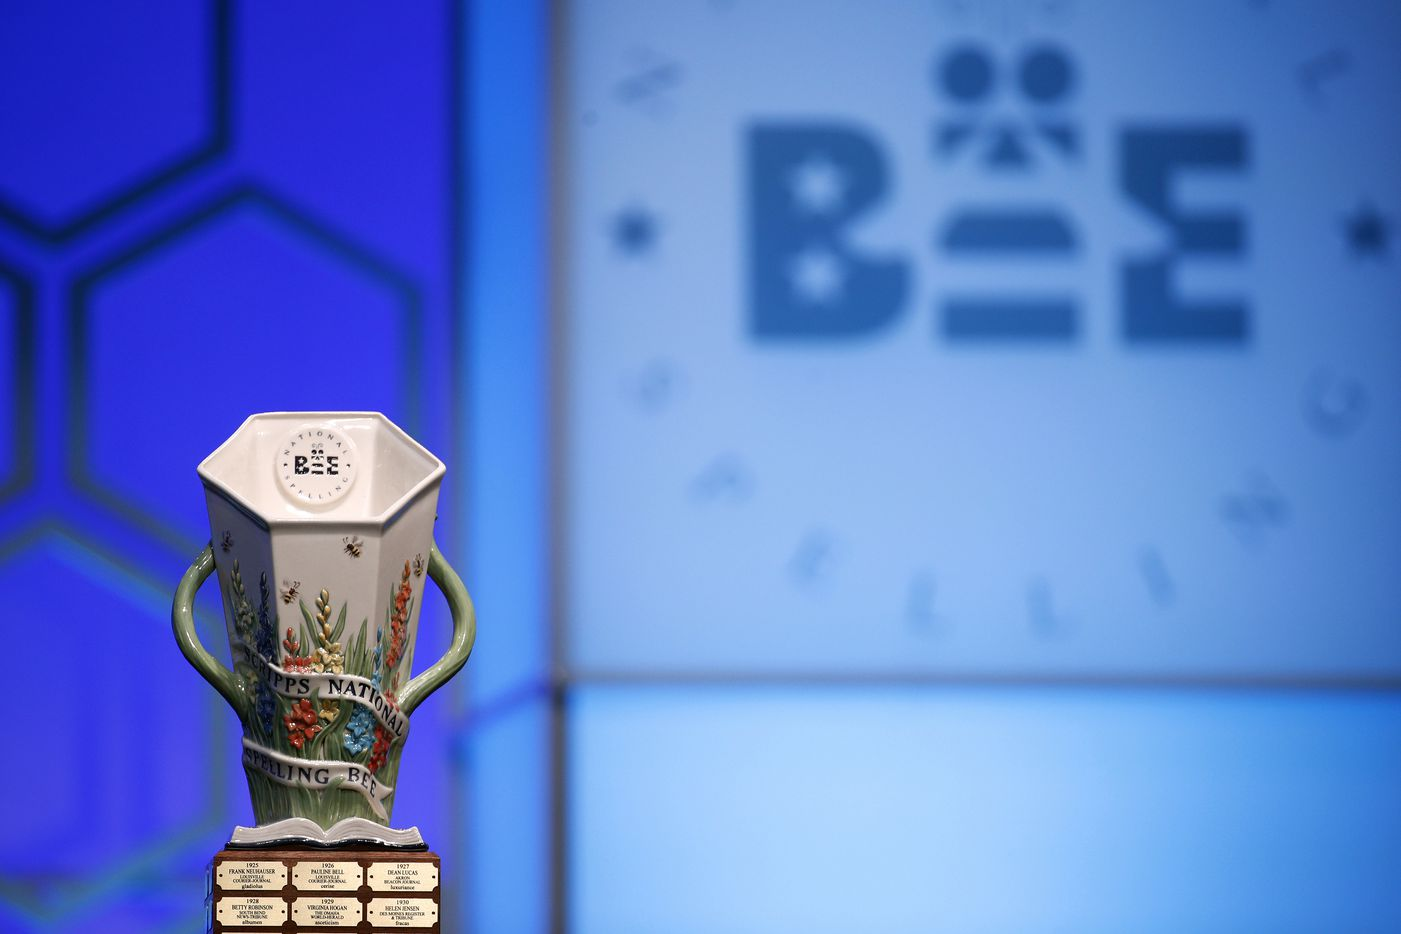 The Scripps National Spelling Bee trophy is displayed before the final round, Thursday, May 30, 2019, in Oxon Hill, Md. (AP Photo/Patrick Semansky)